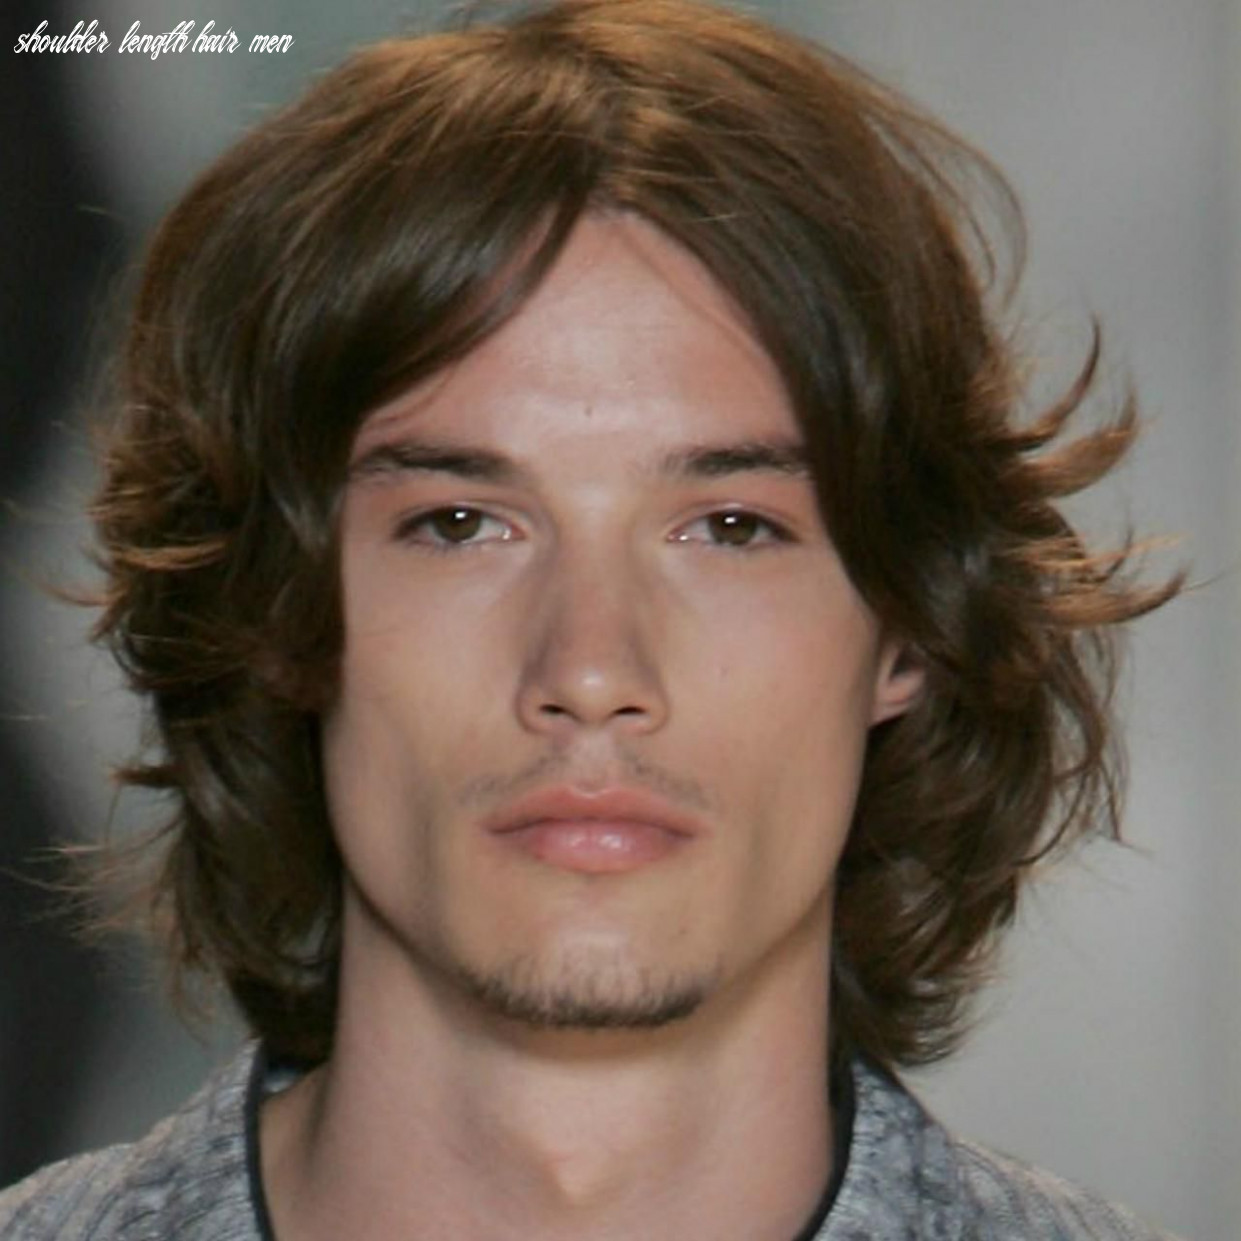 Long hairstyles for men picture gallery shoulder length hair men